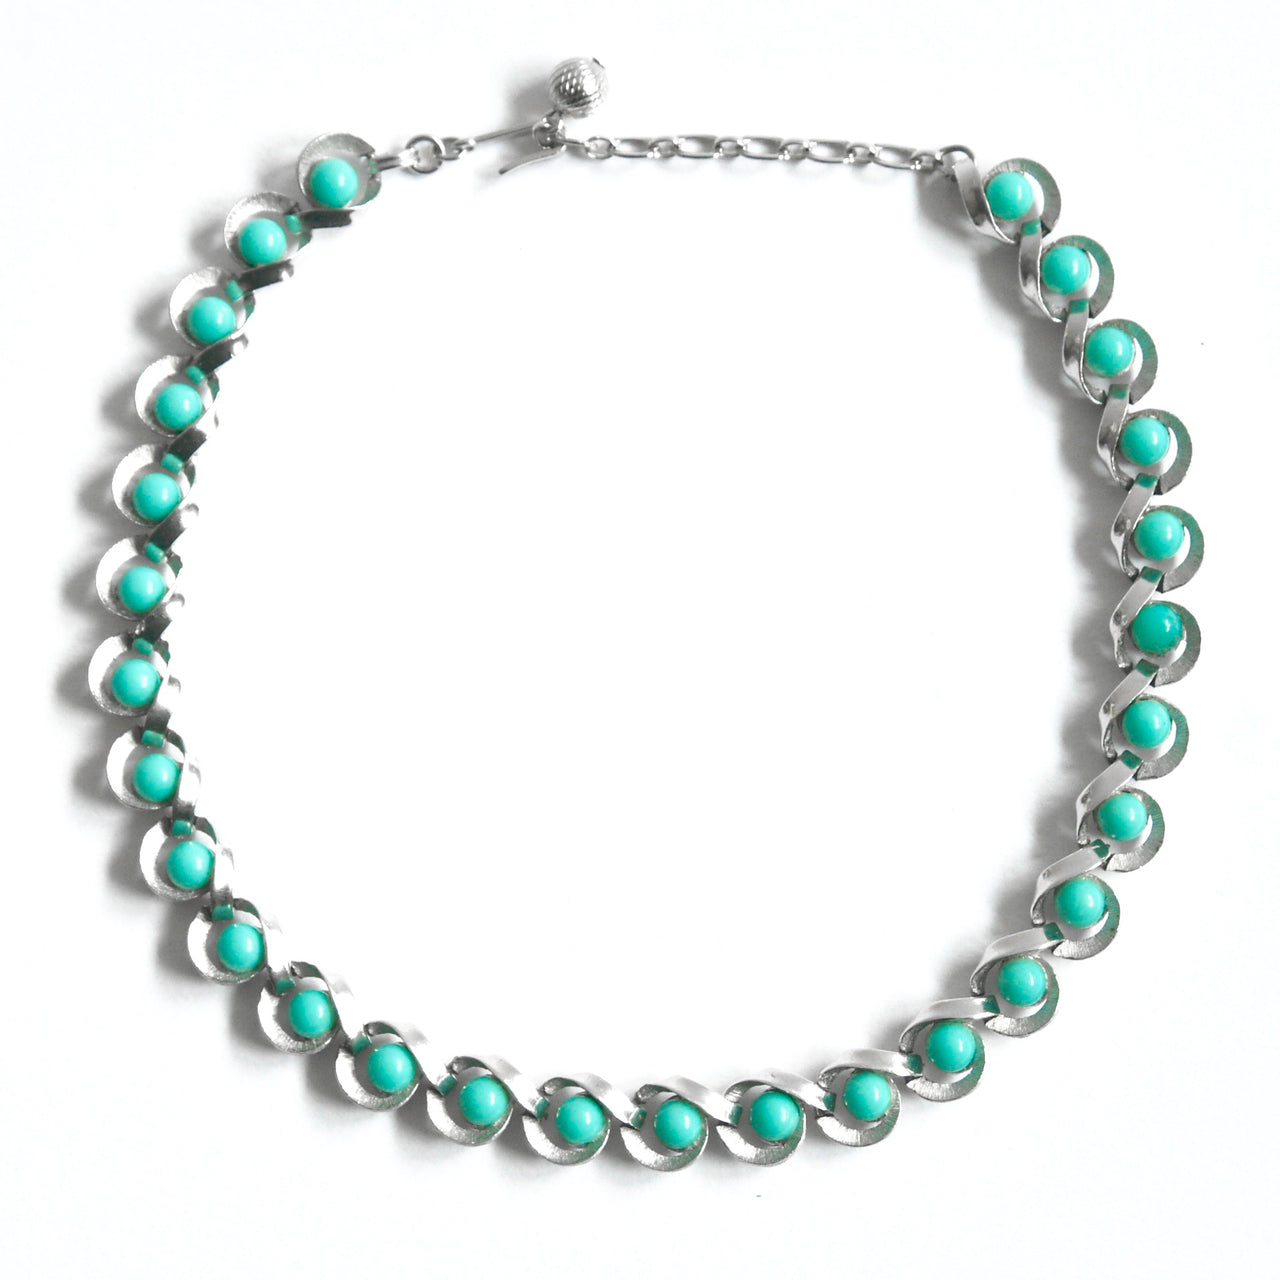 1960s Vintage Trifari Turquoise Chrome Necklace